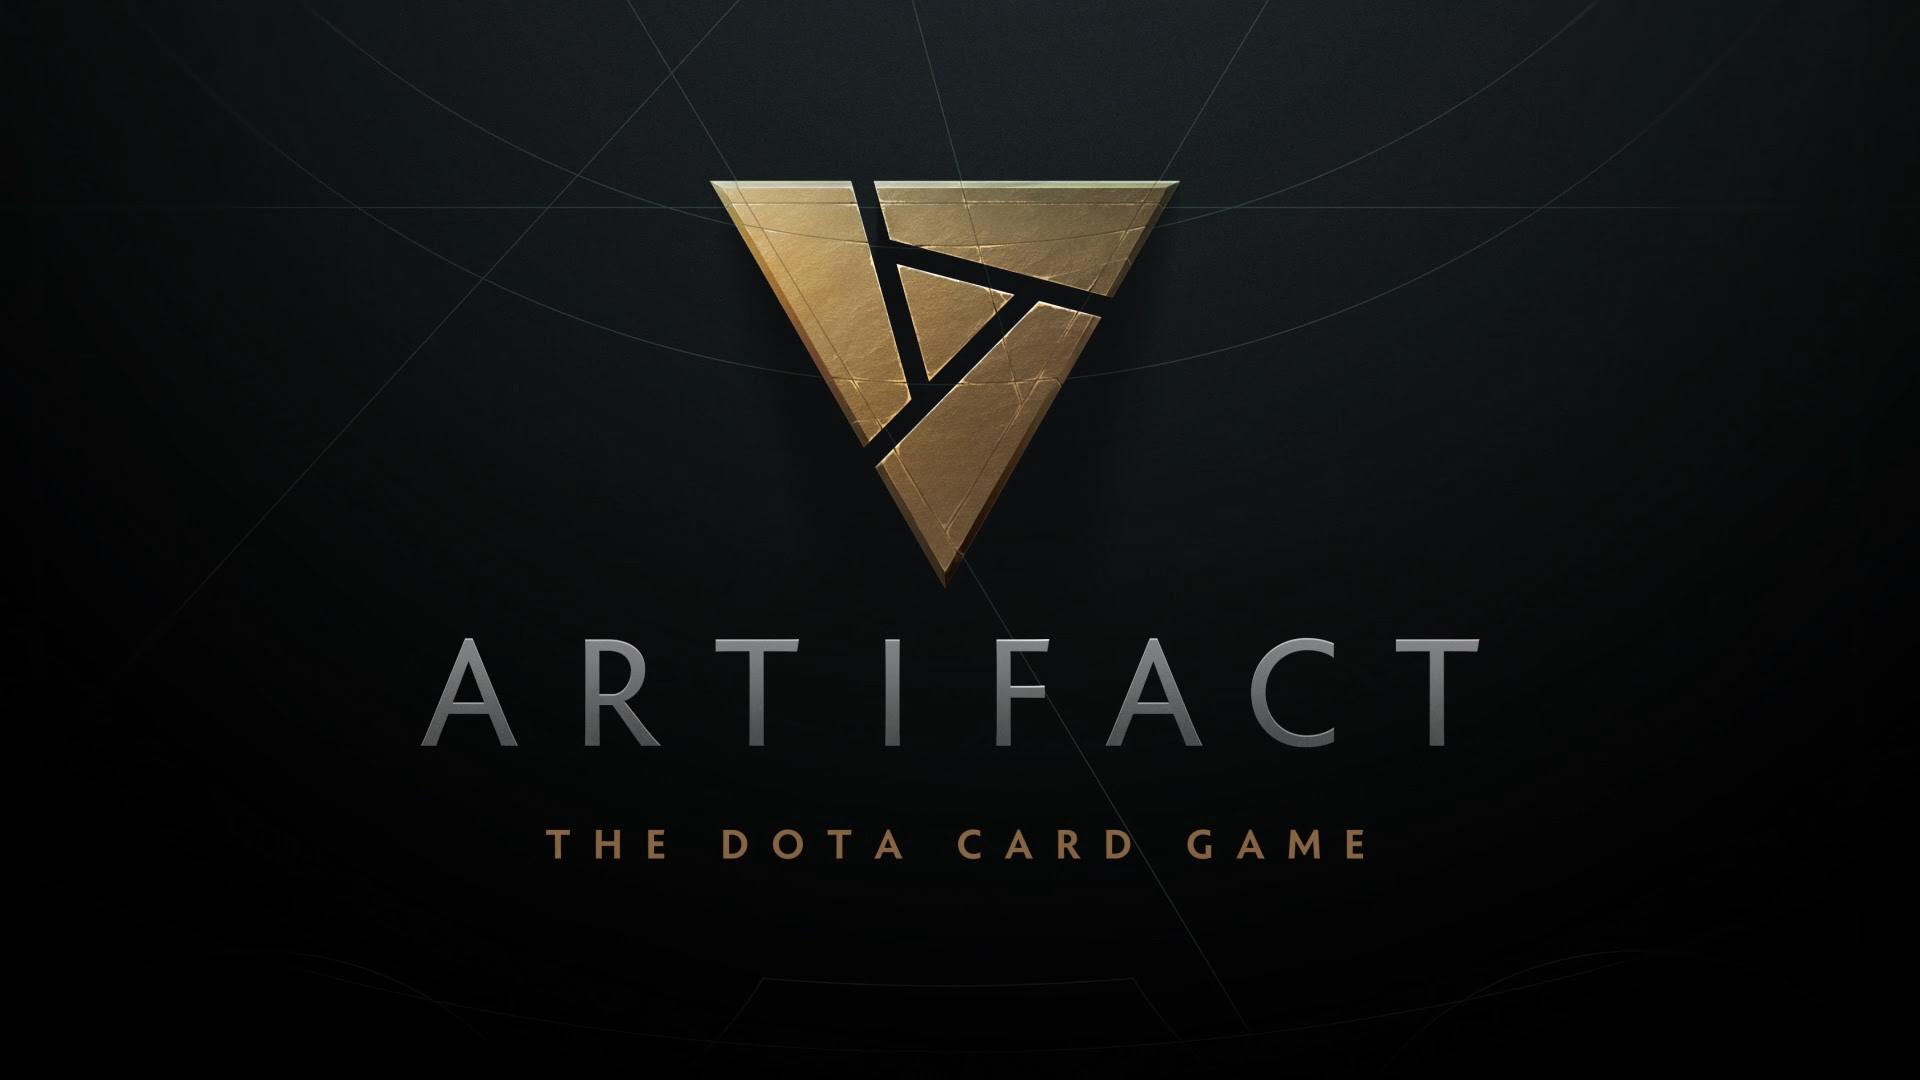 Valve's doing a new project! (But it's a Dota card game) screenshot